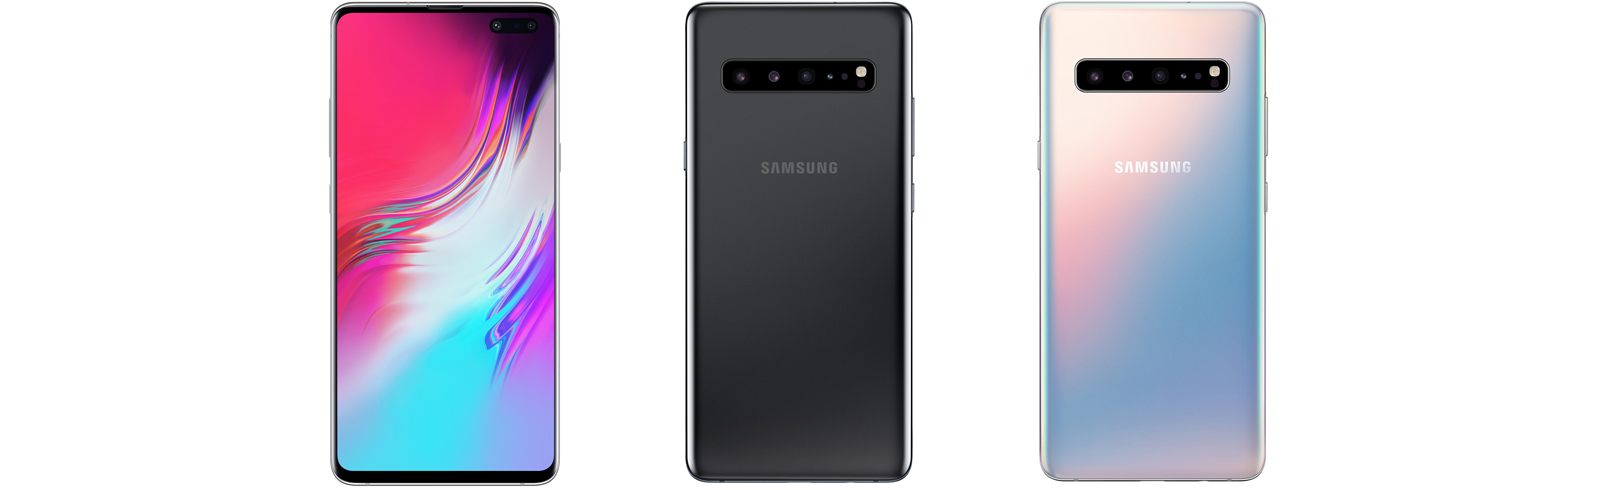 Samsung Galaxy S10 5G available in the UK via EE and Vodafone from